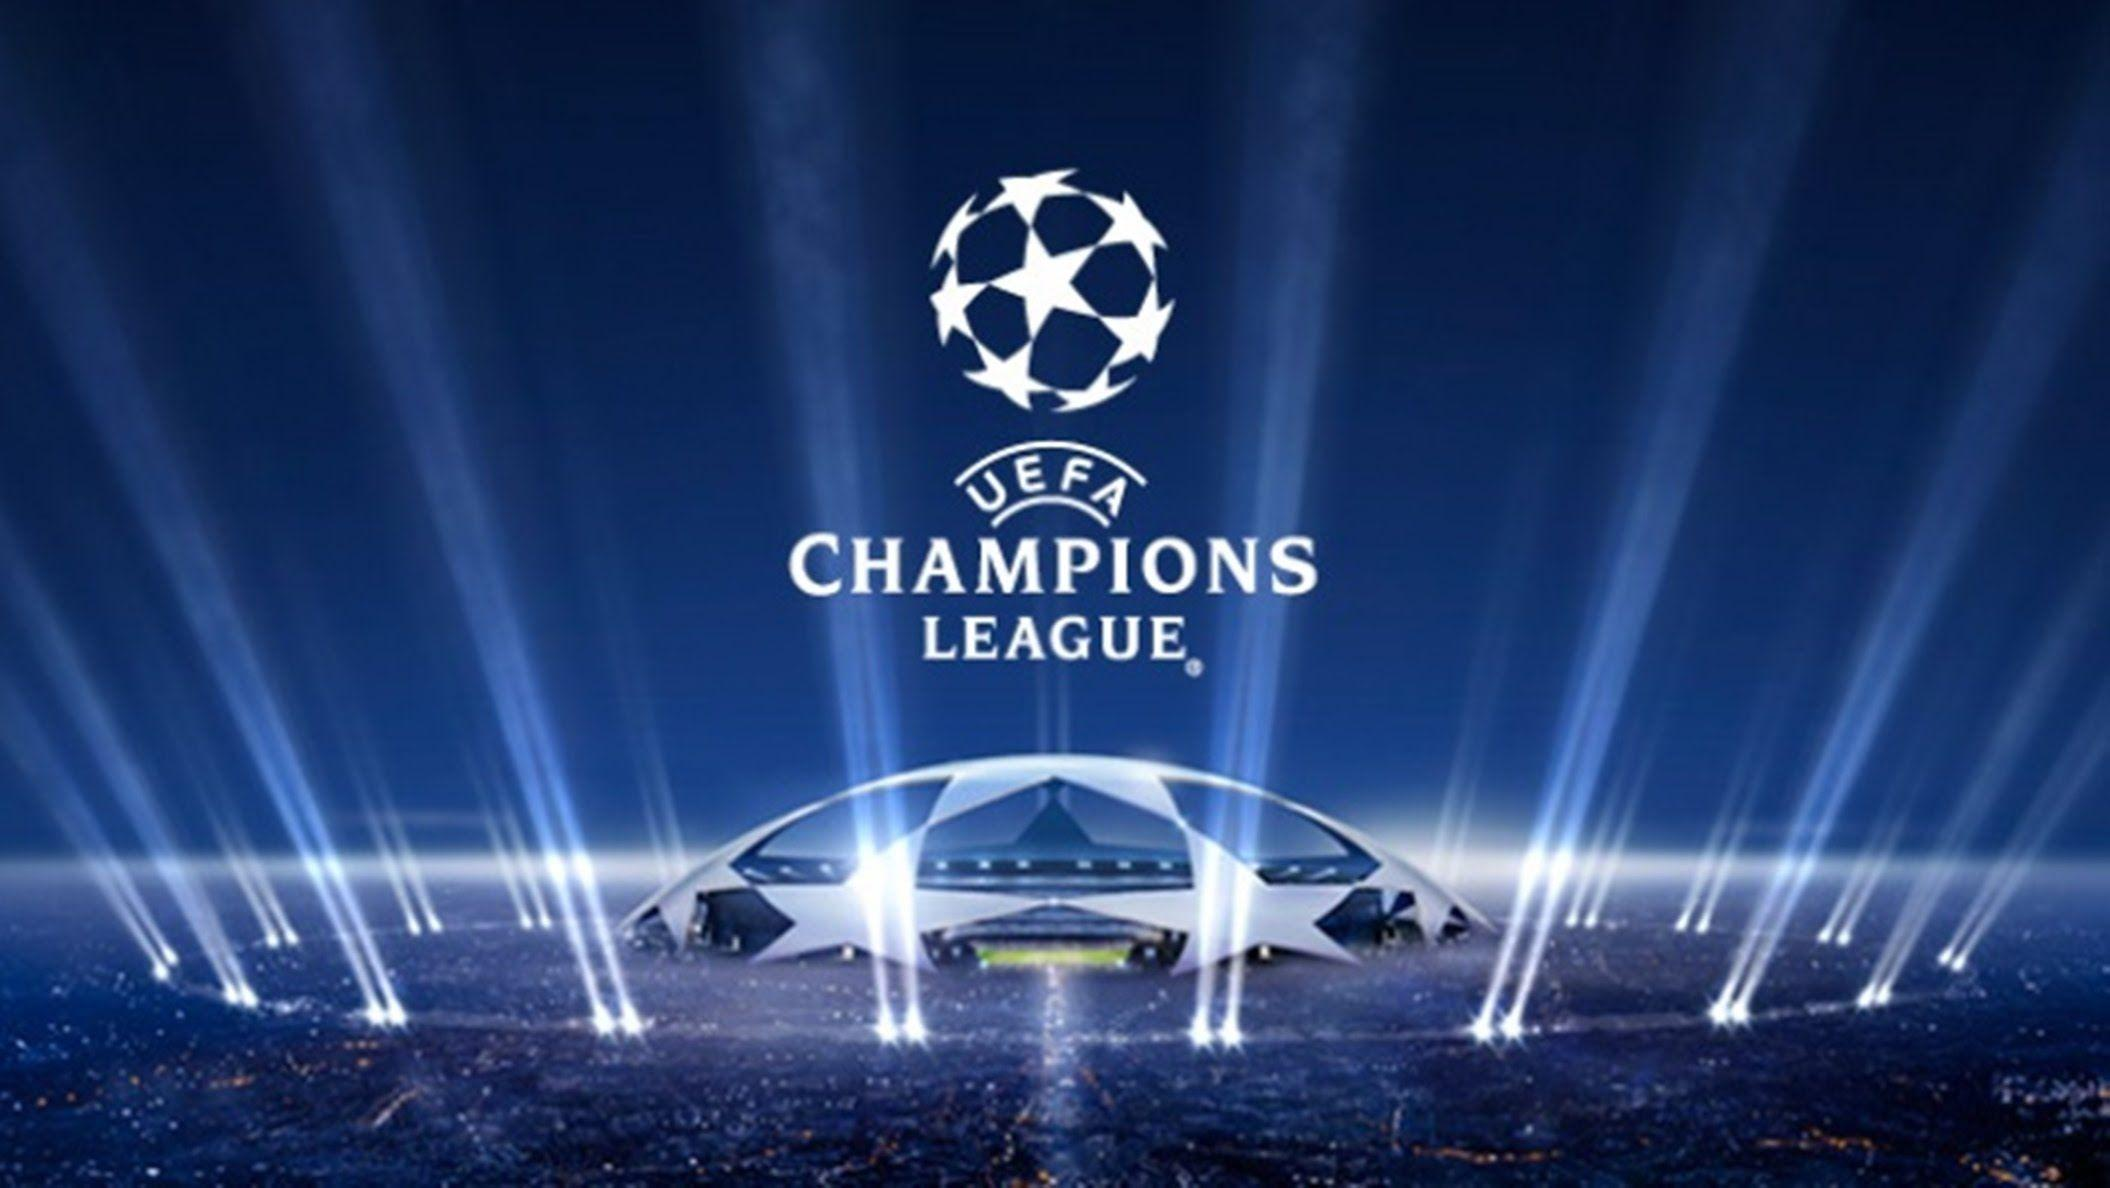 champions league 2019 wallpapers wallpaper cave champions league 2019 wallpapers